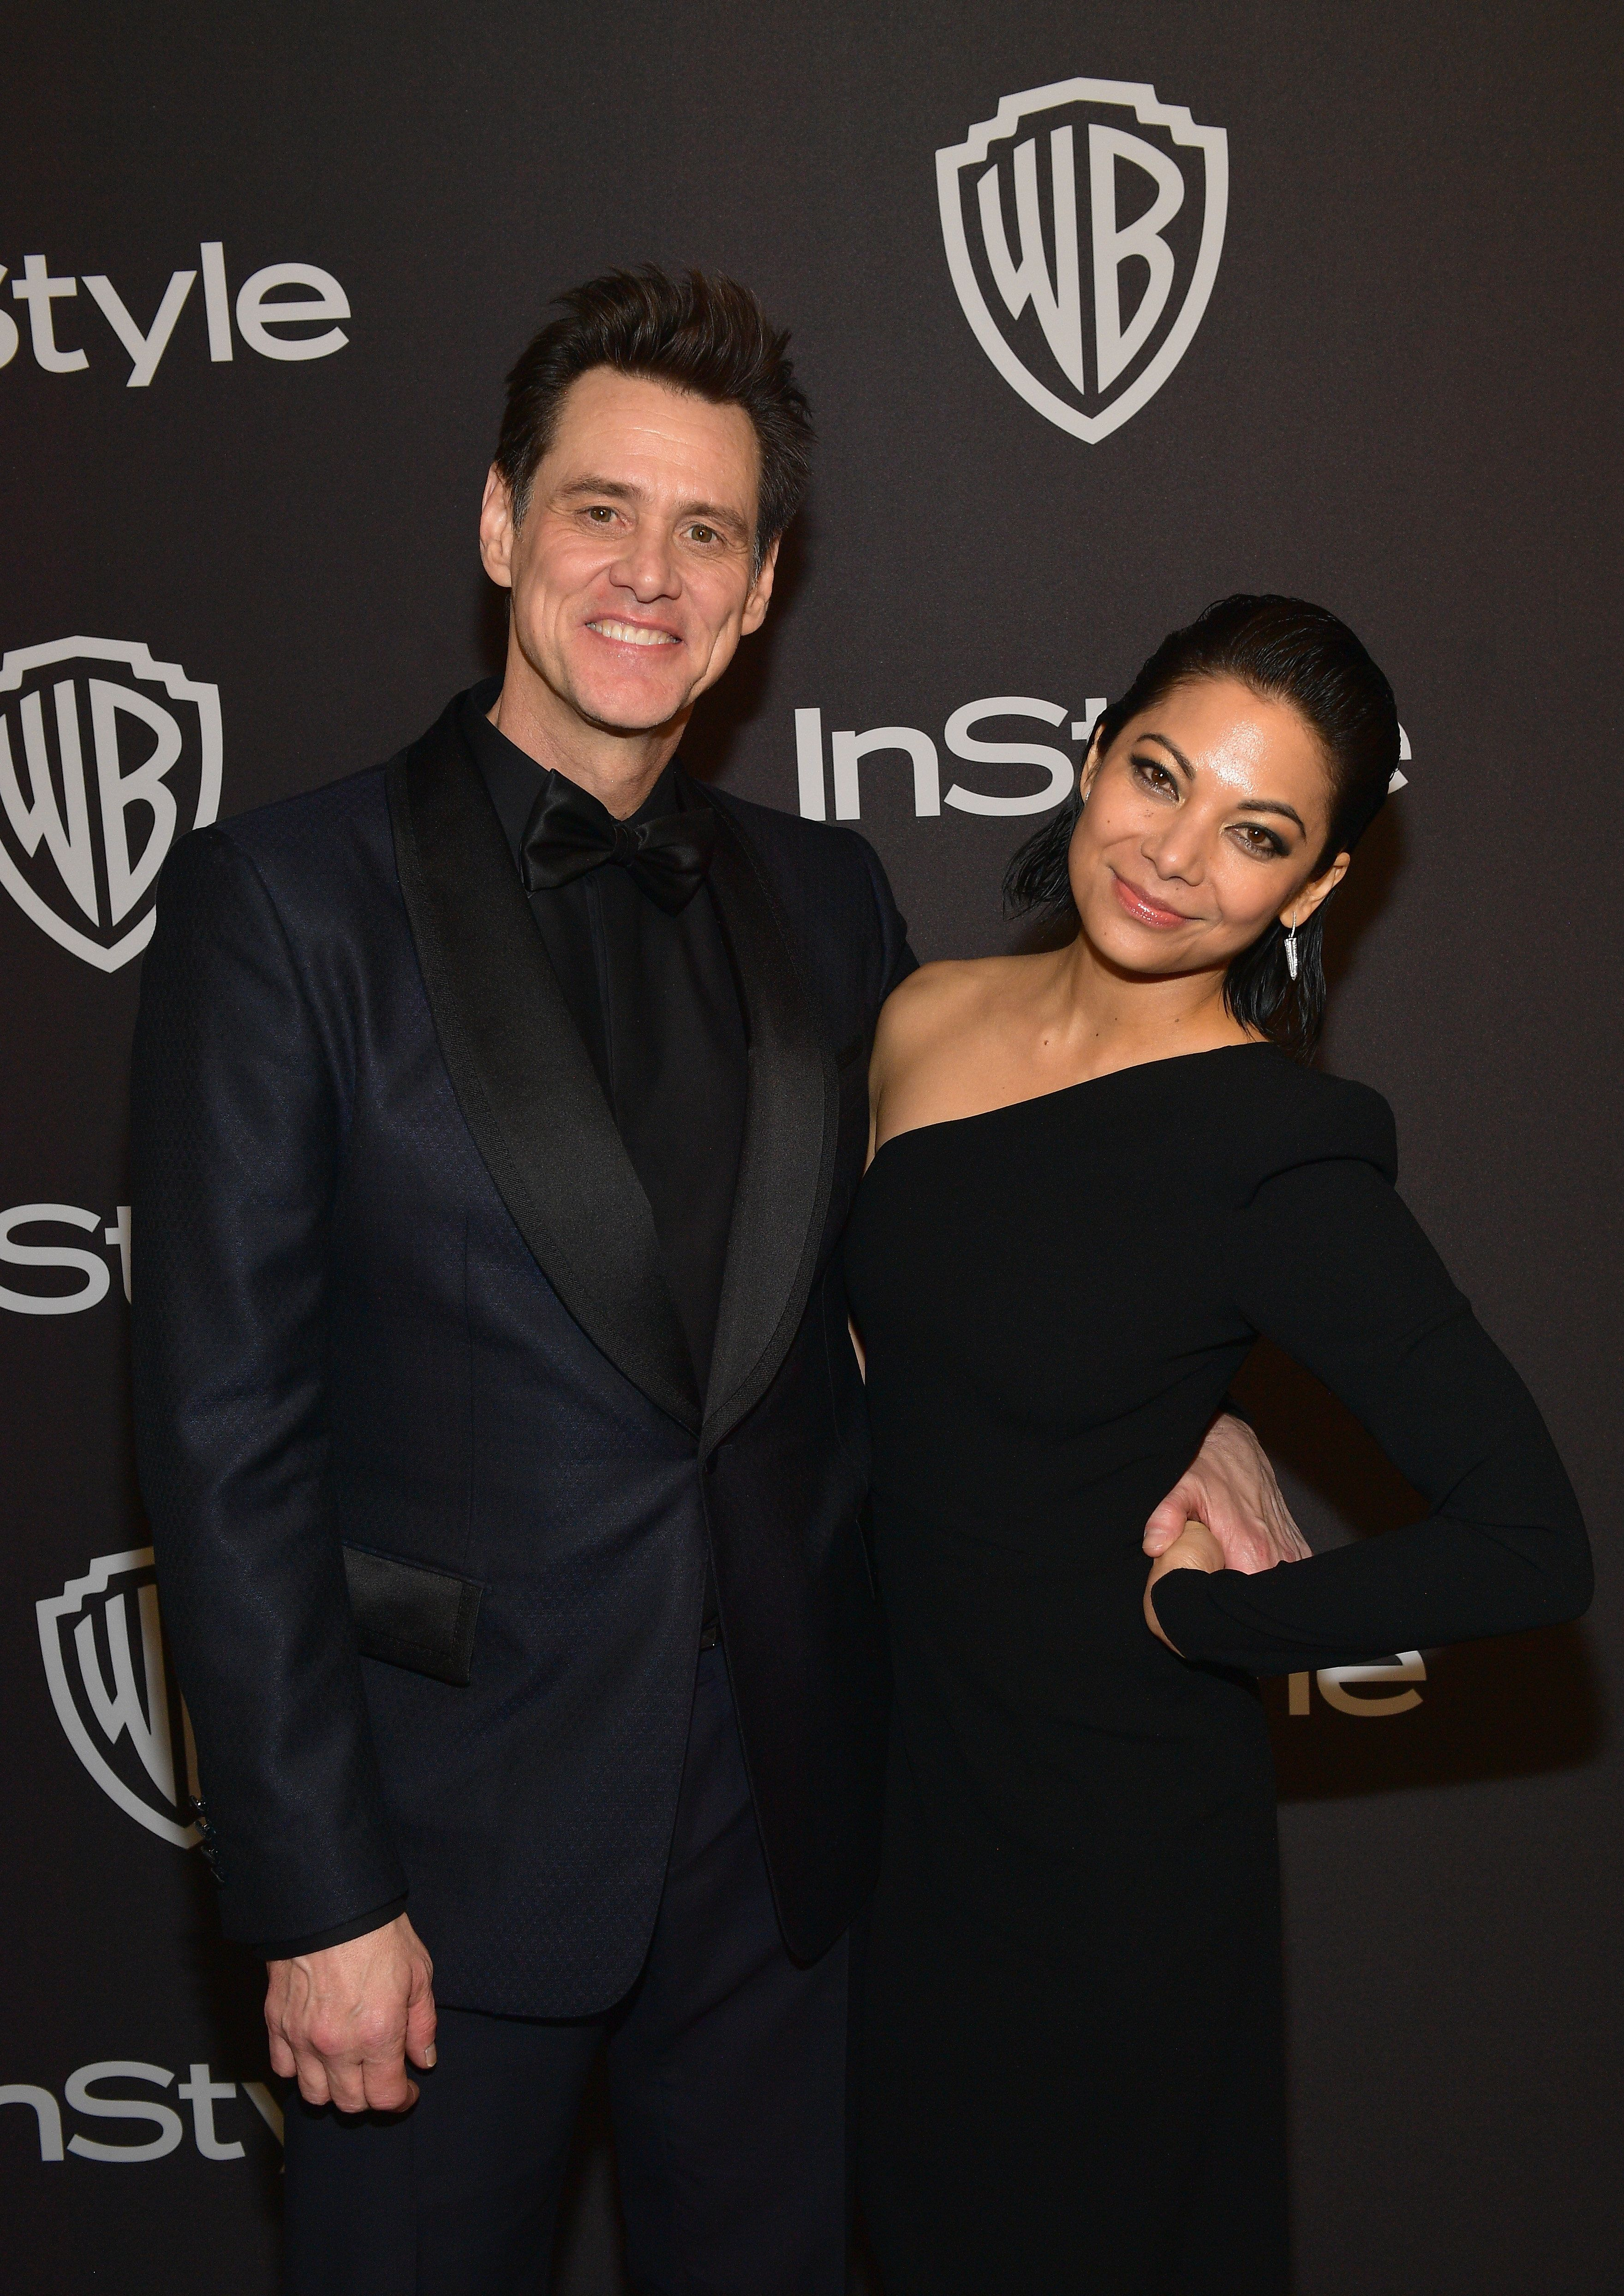 BEVERLY HILLS, CA - JANUARY 06: Jim Carrey and Ginger Gonzaga attends the 2019 InStyle and Warner Bros. 76th Annual Golden Globe Awards Post-Party at The Beverly Hilton Hotel on January 6, 2019 in Beverly Hills, California.  (Photo by Matt Winkelmeyer/Getty Images for InStyle)